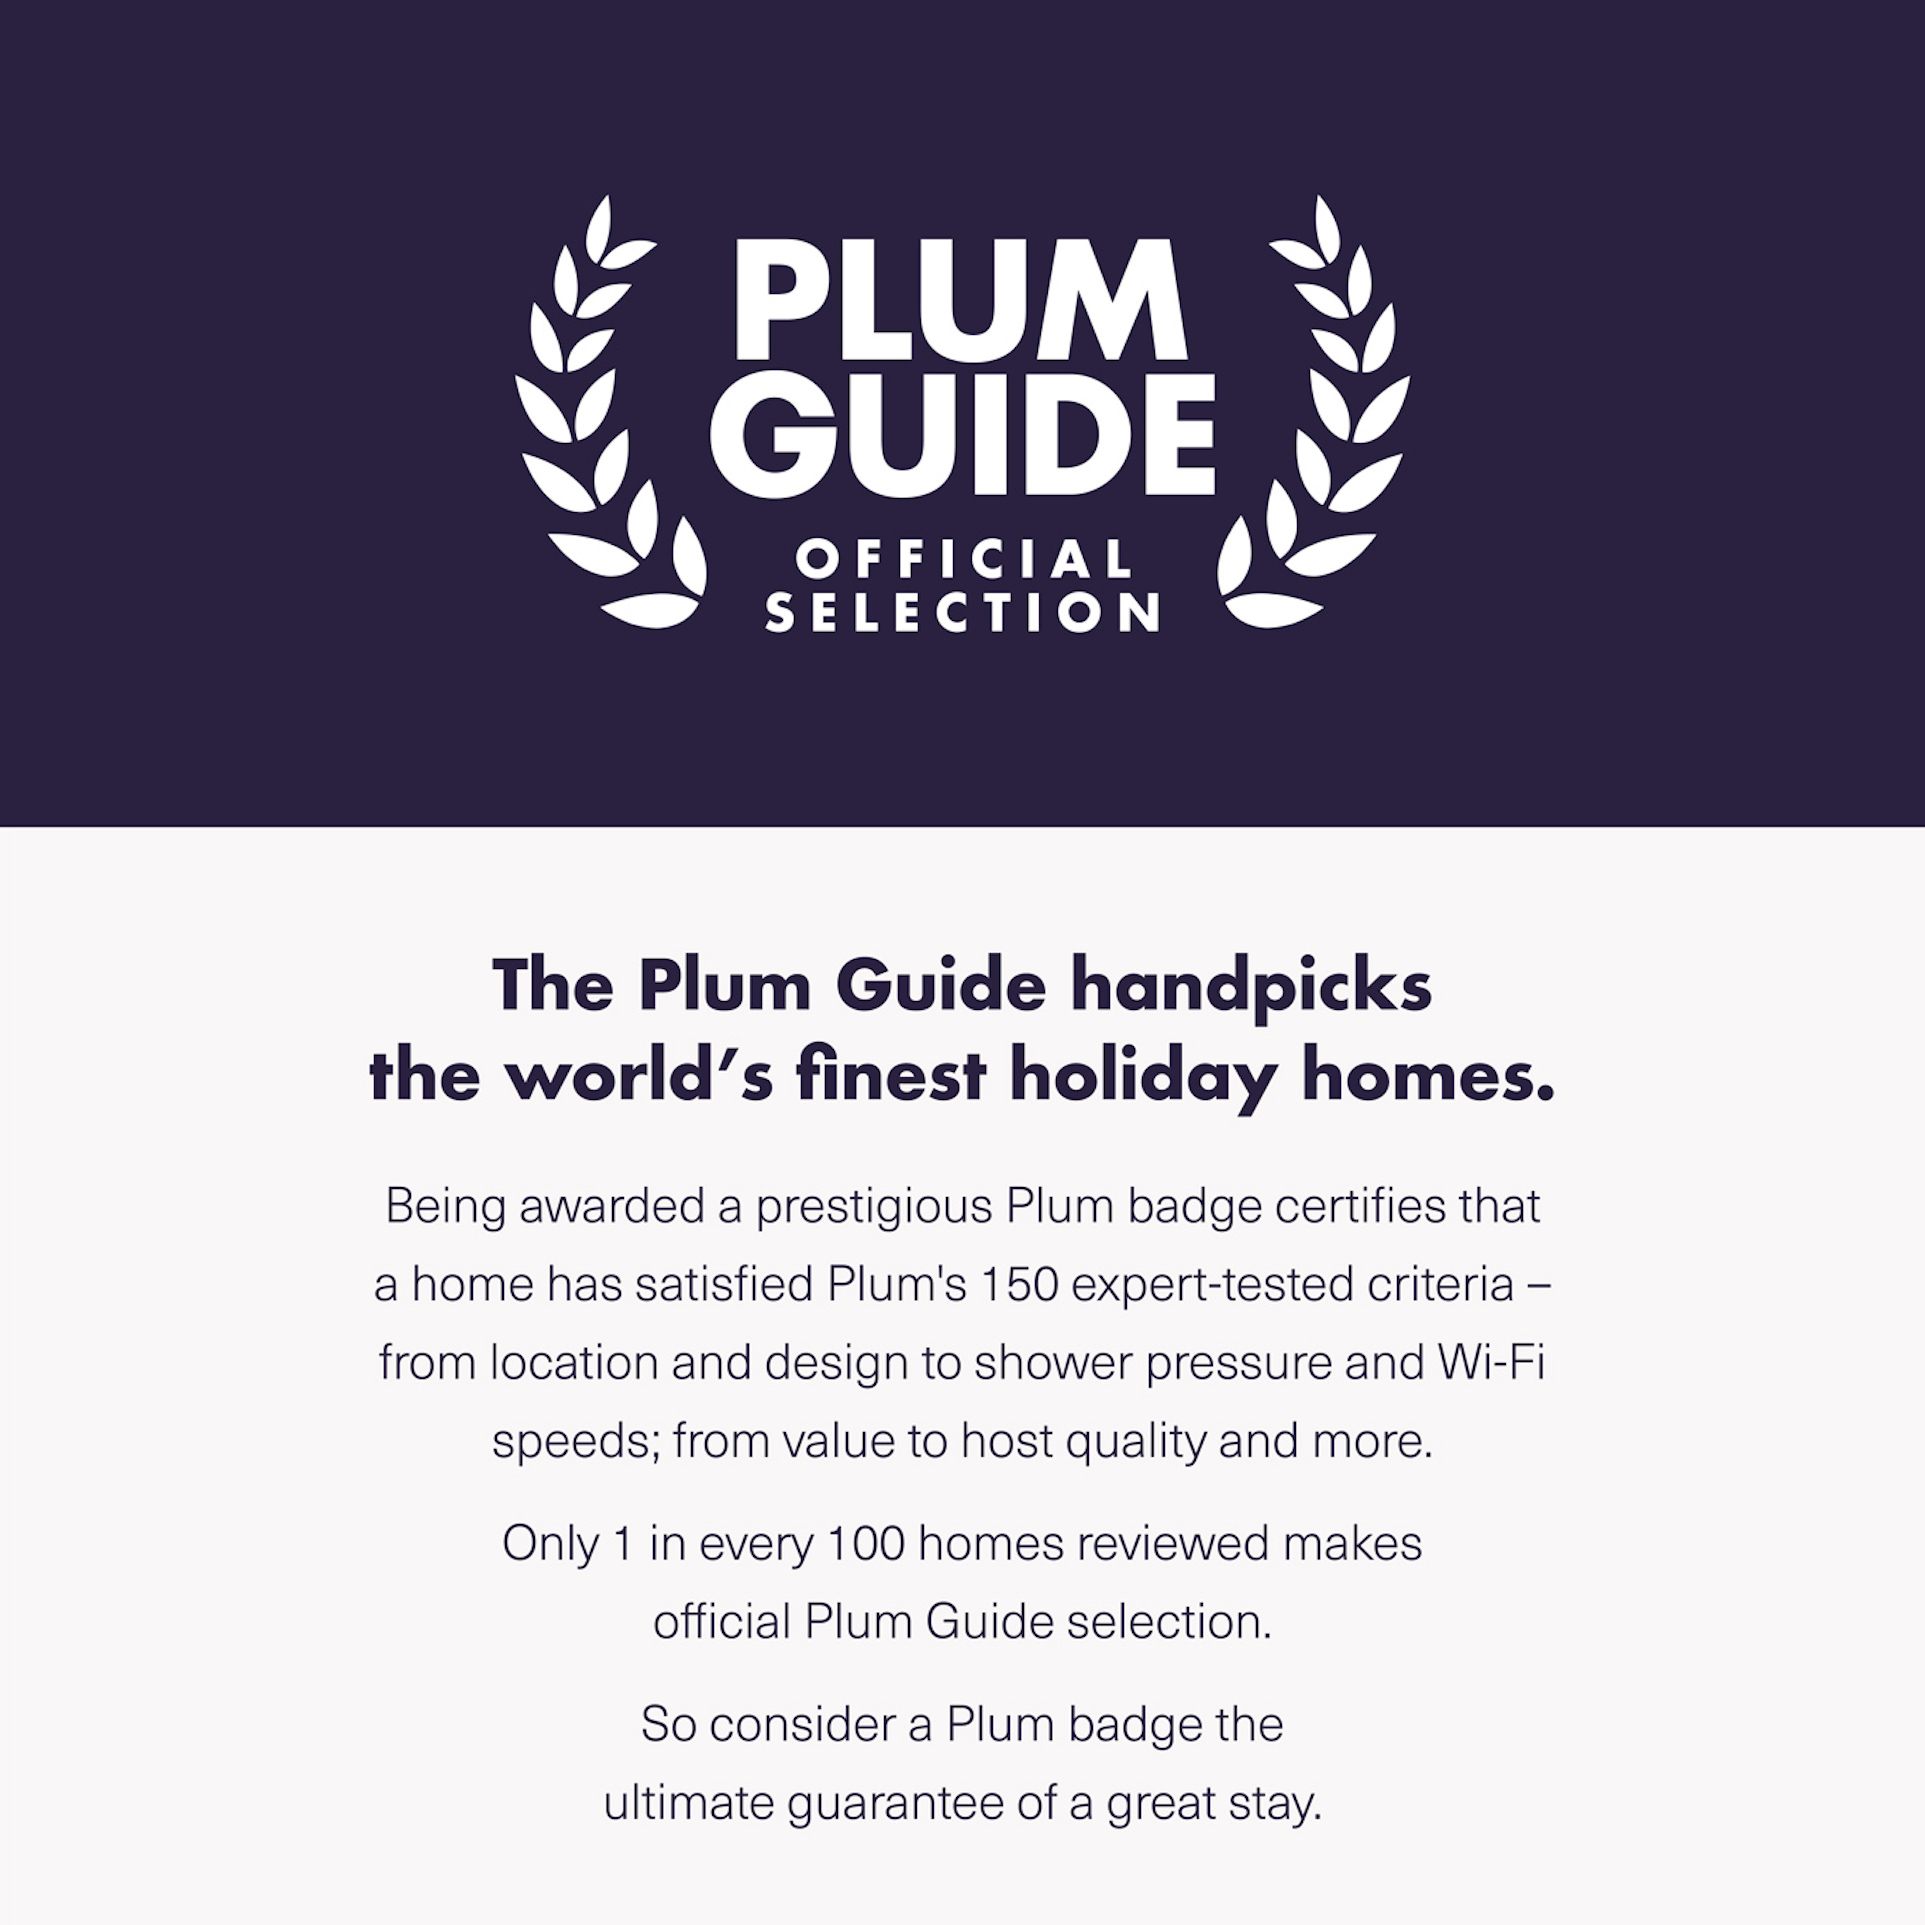 Plum Guide Official Selection